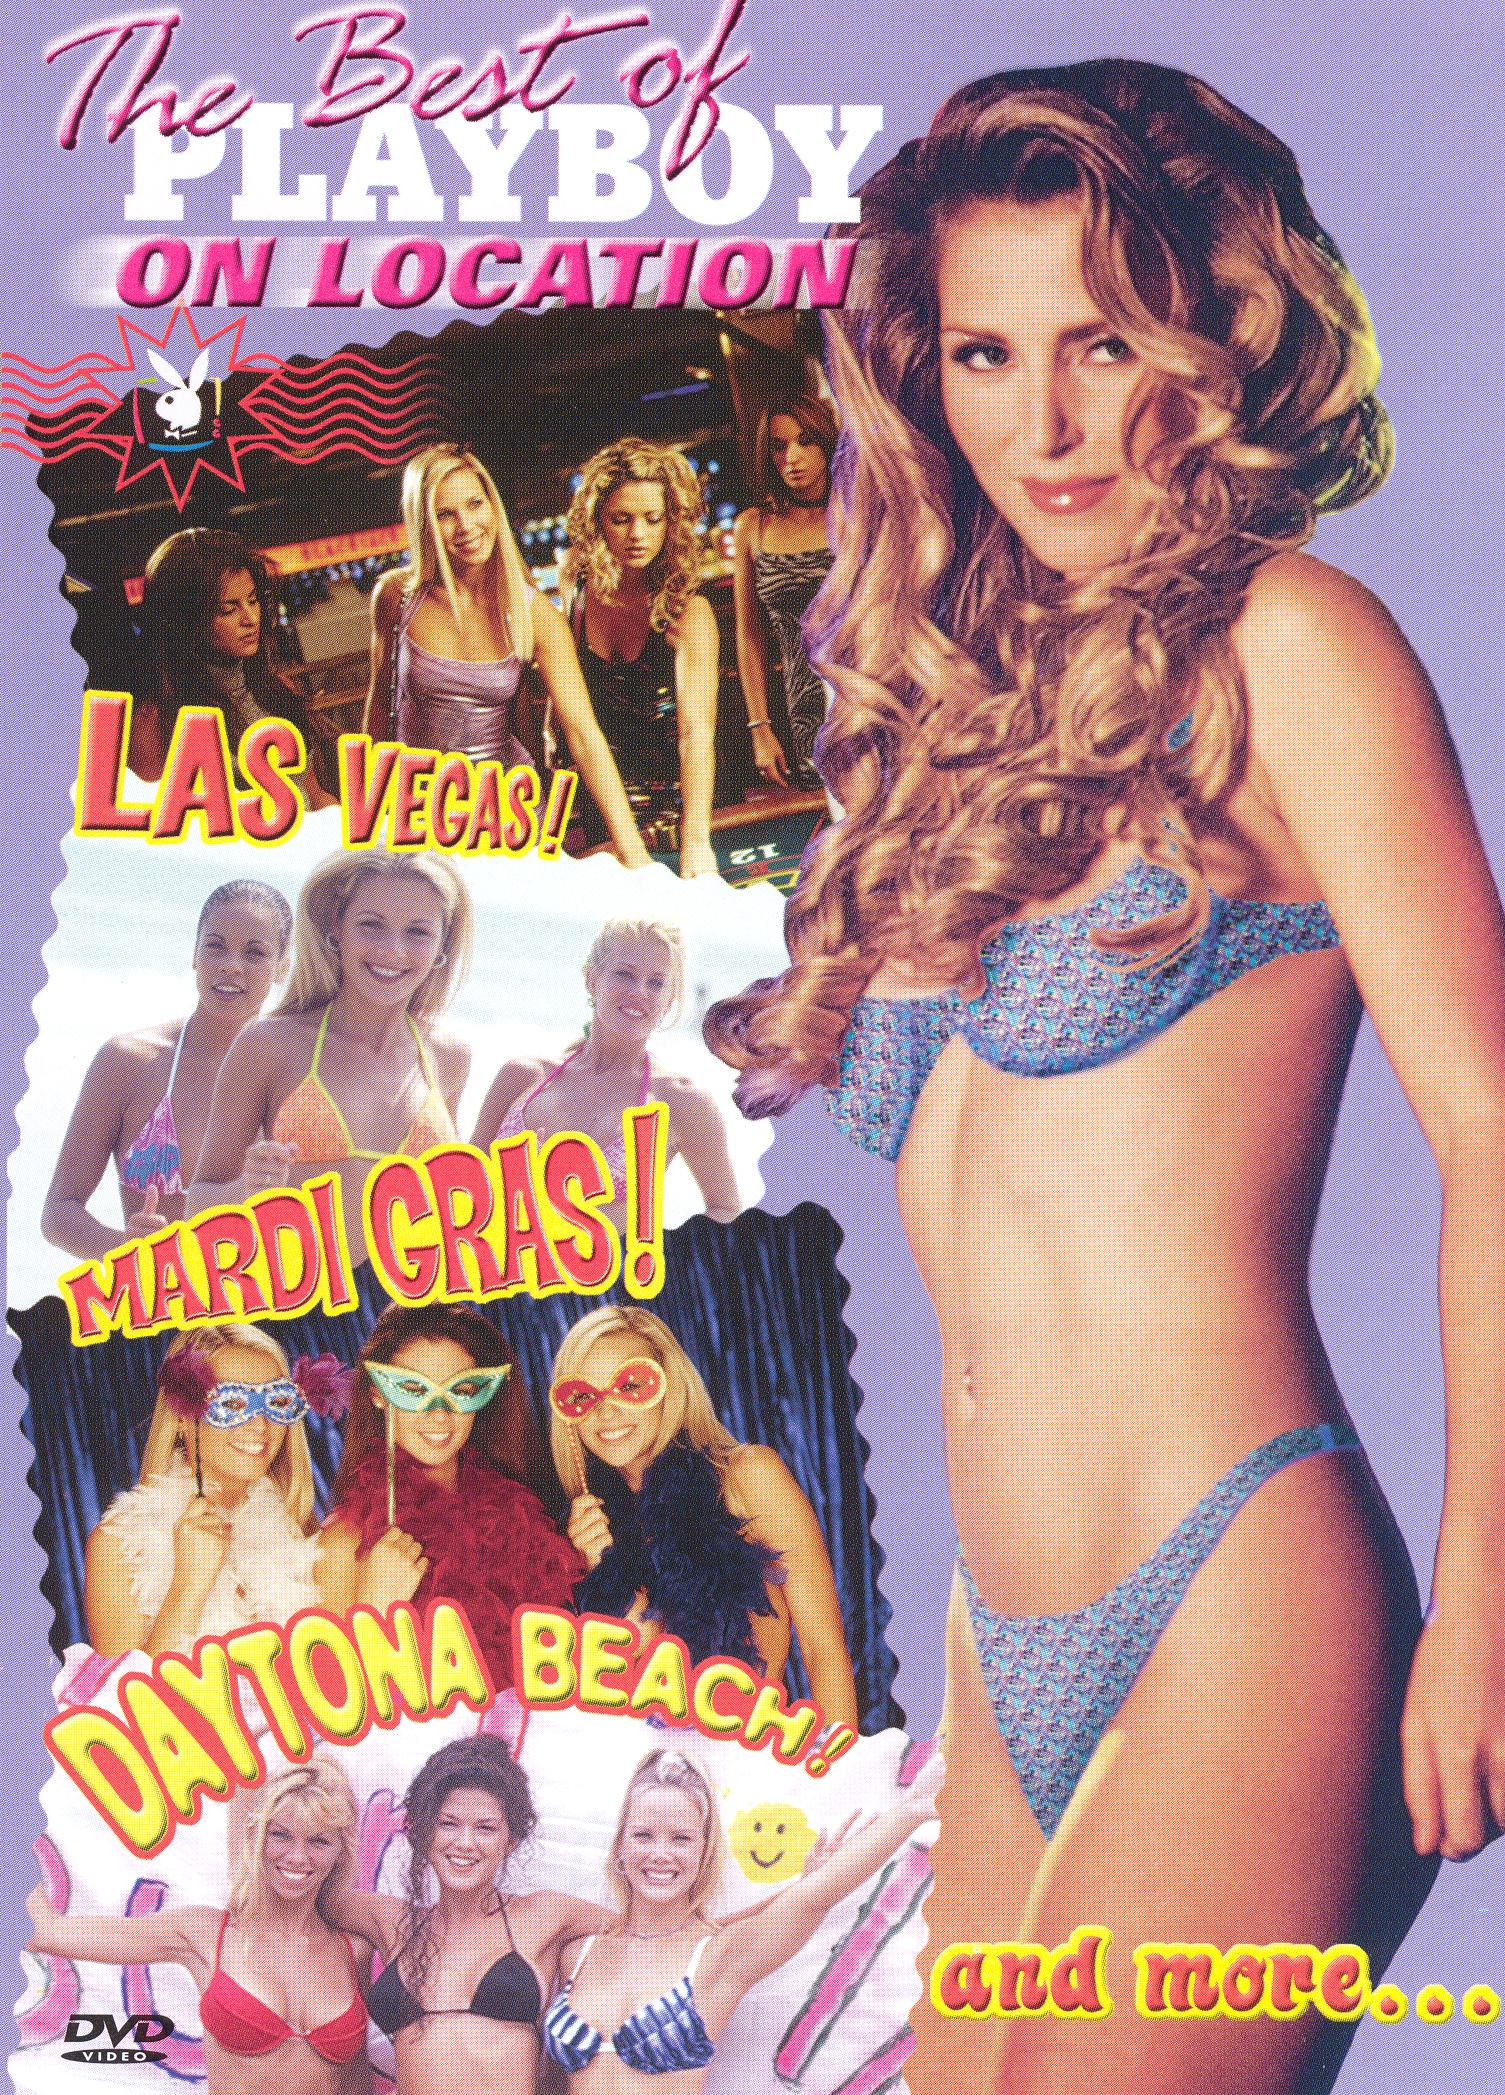 Playboy TV: Best of Playboy on Location